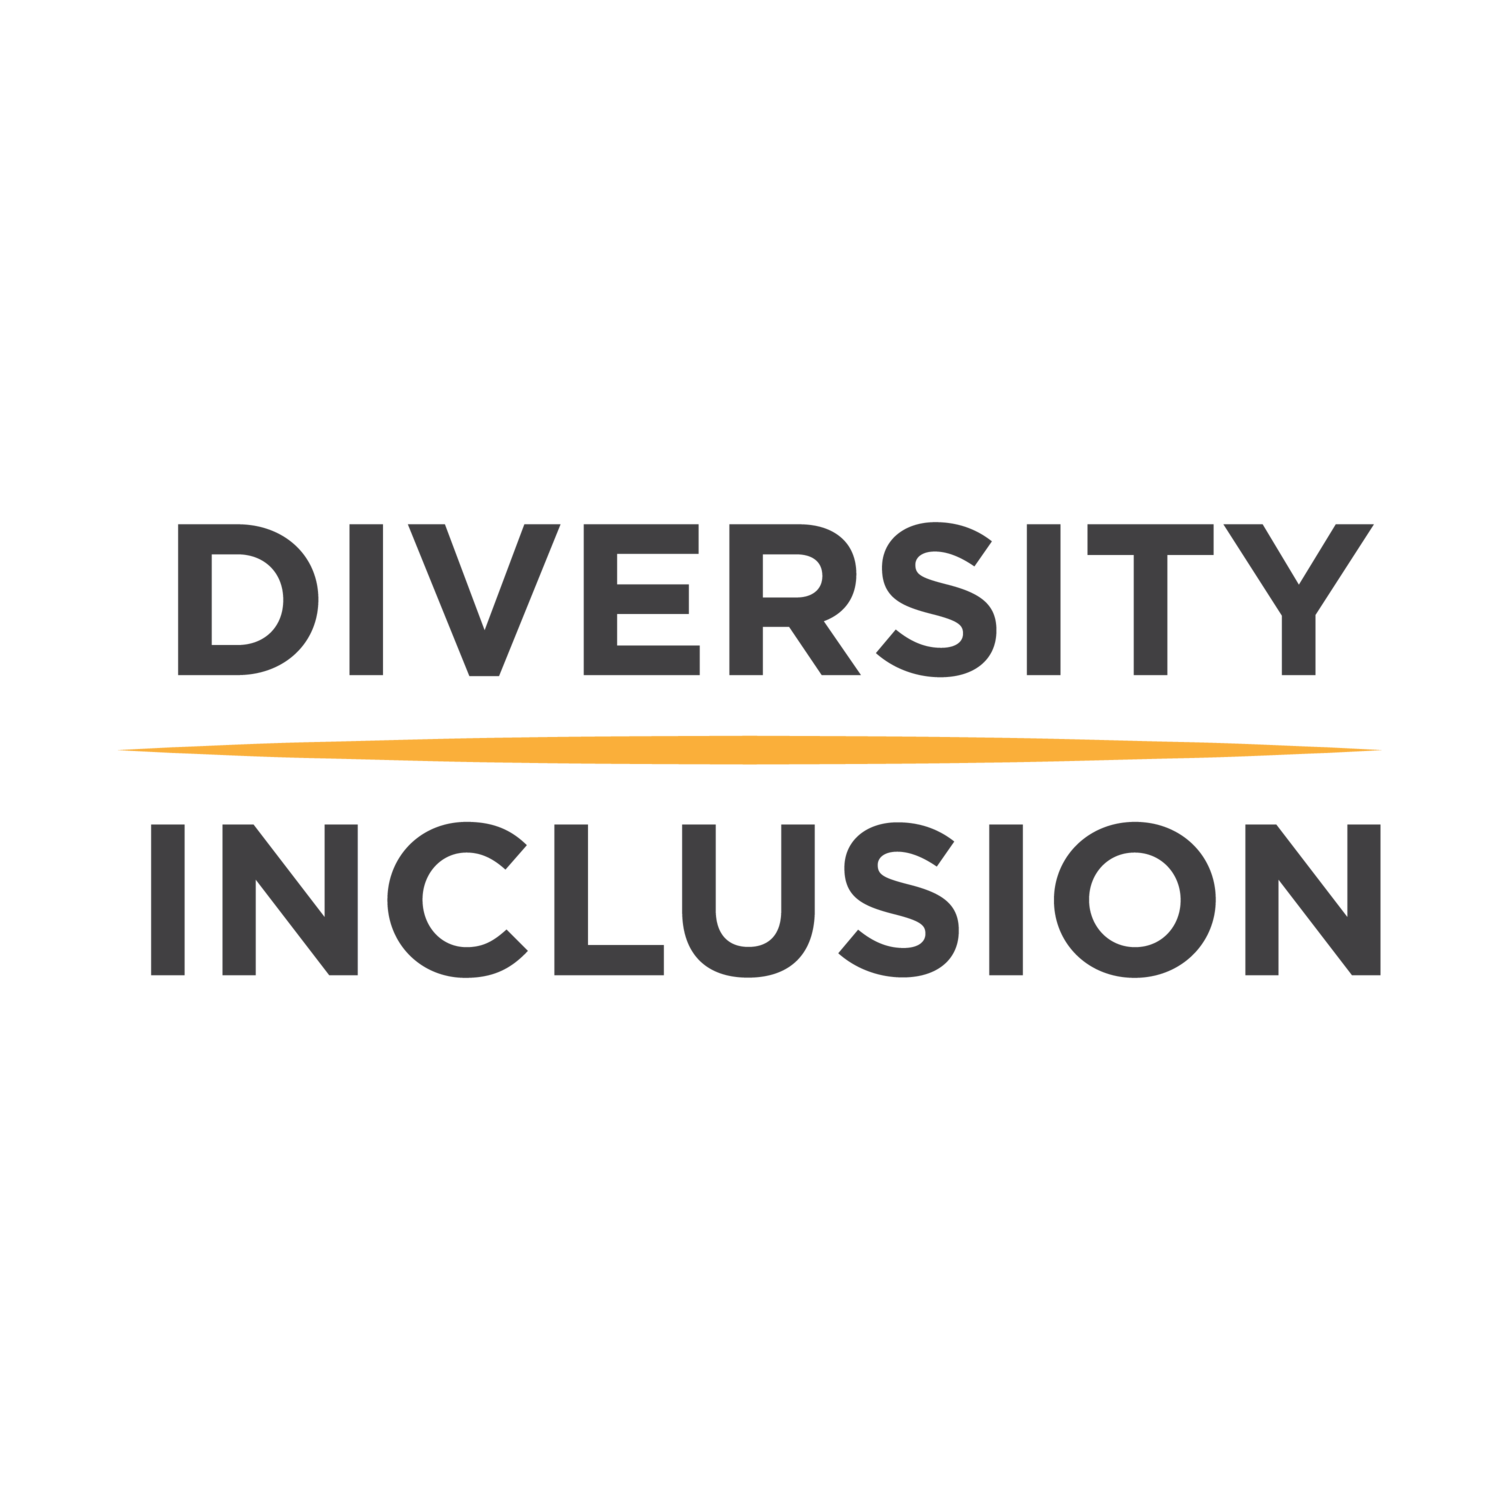 Diversity to Inclusion, Inc